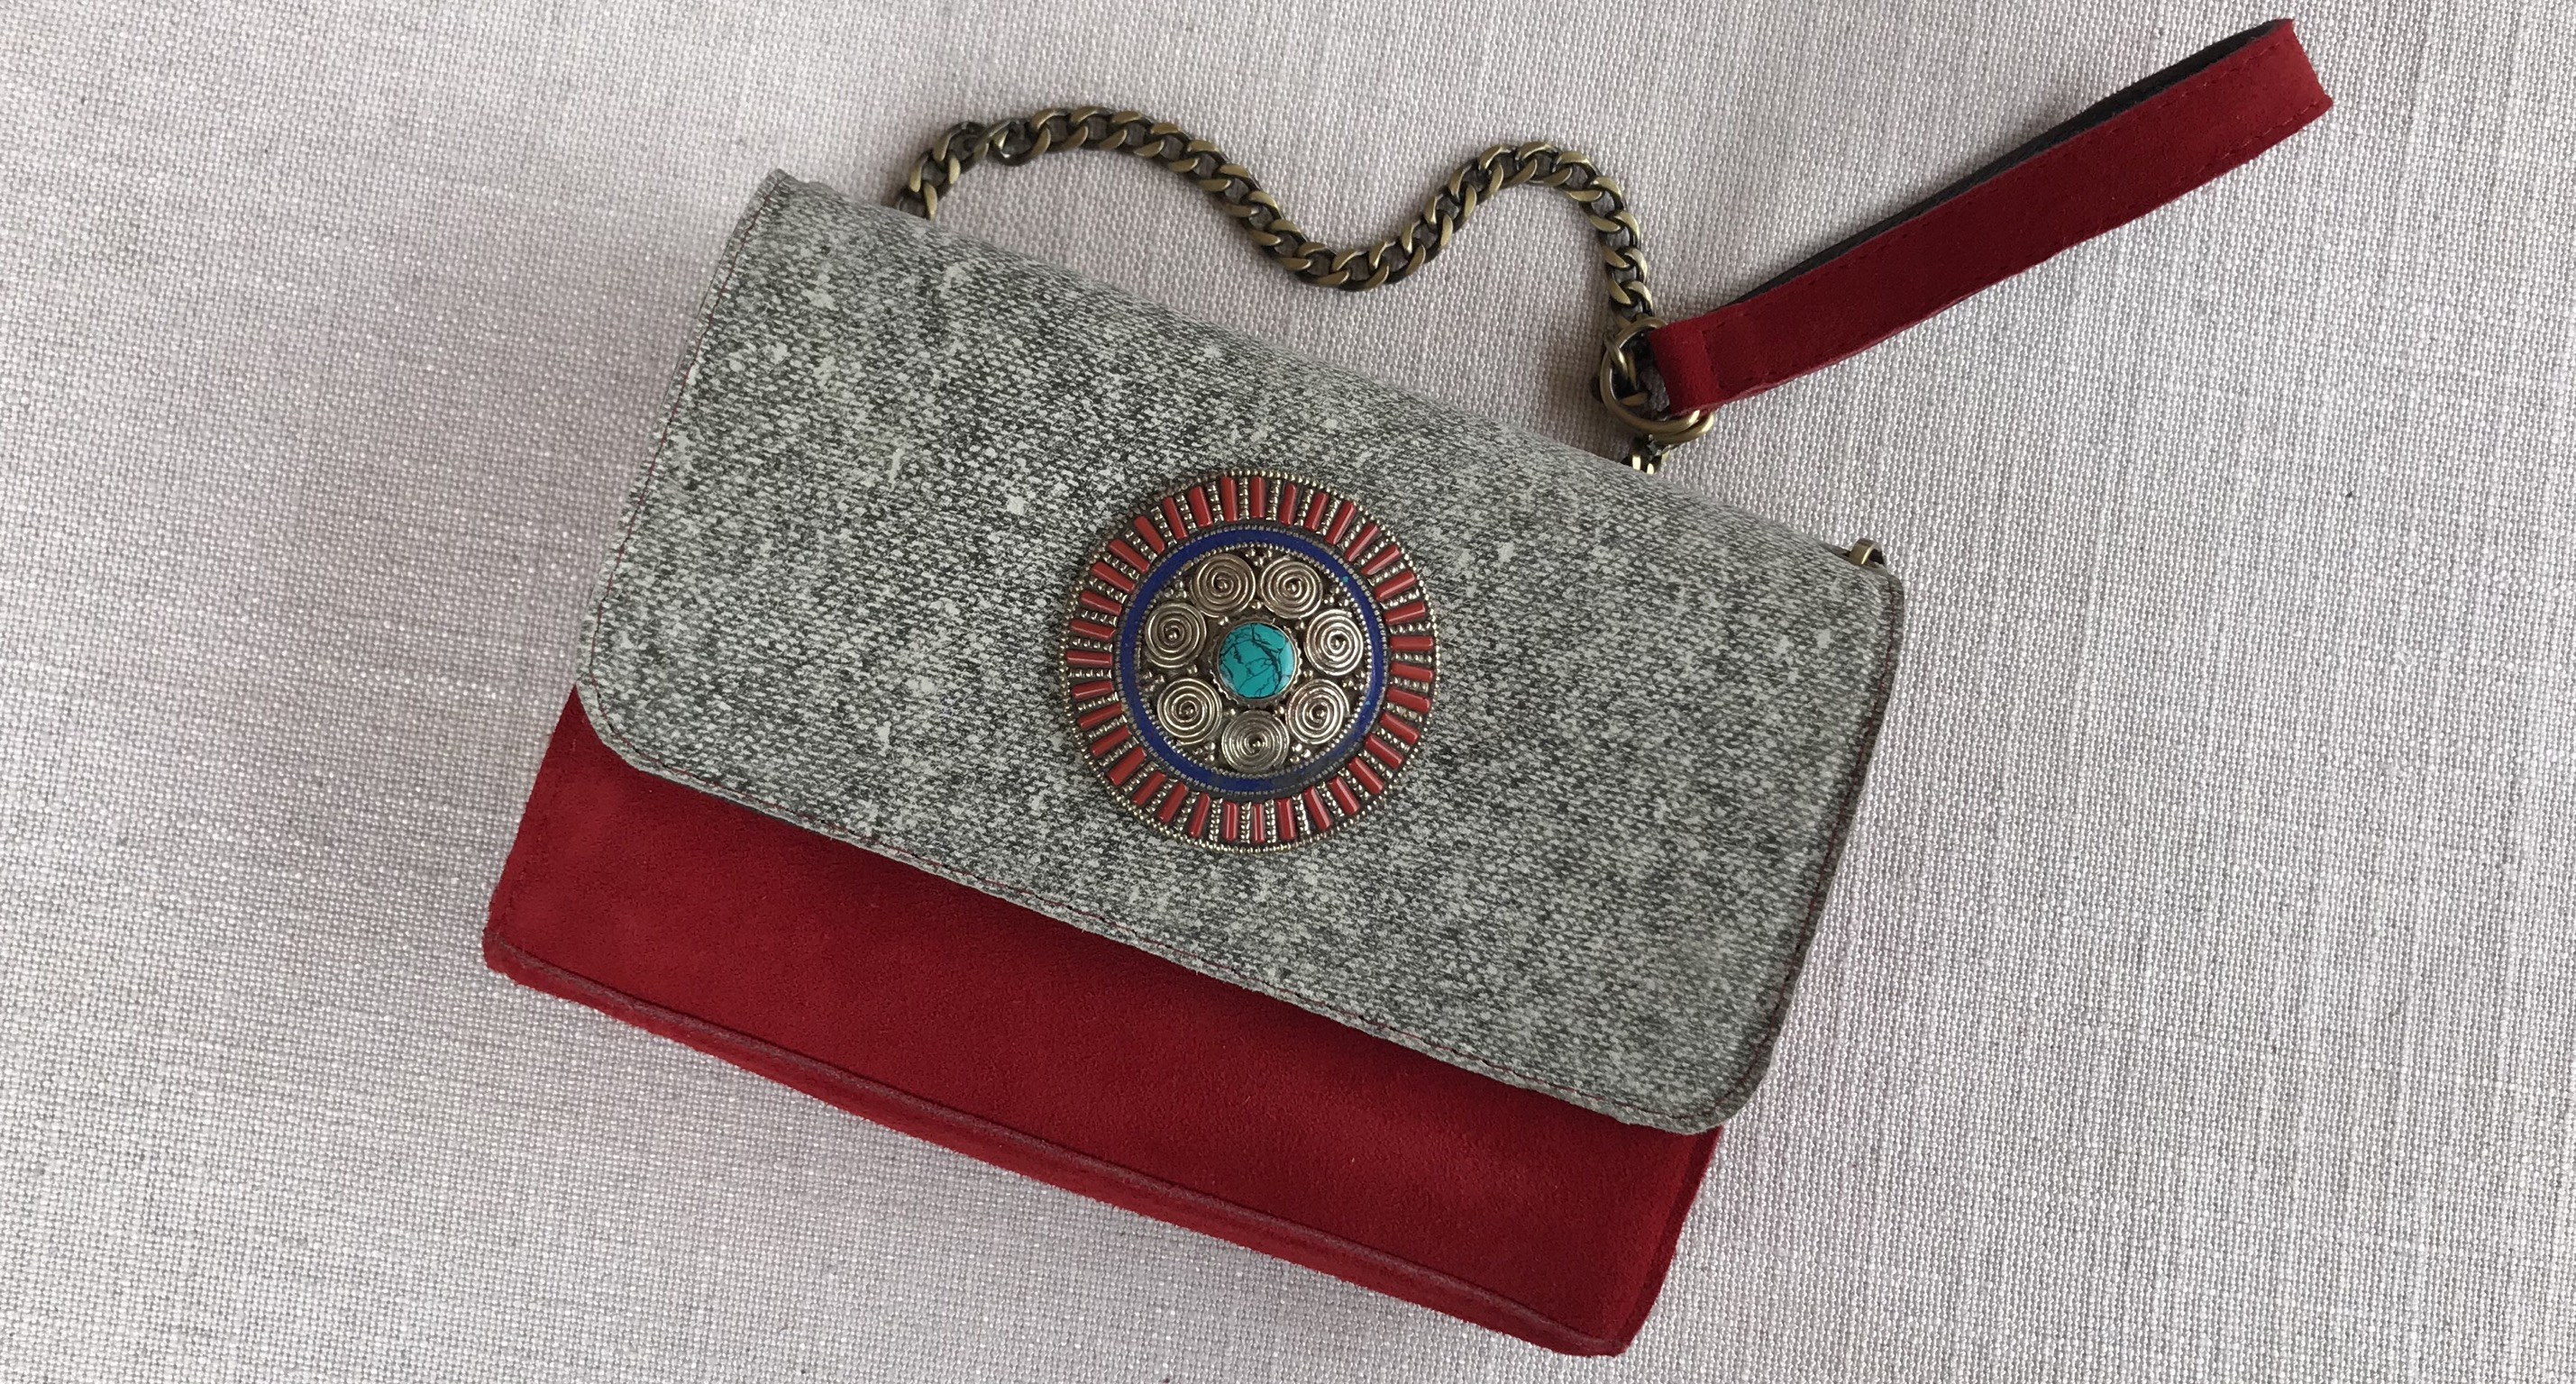 jewelry bag leather & suede leather grey red